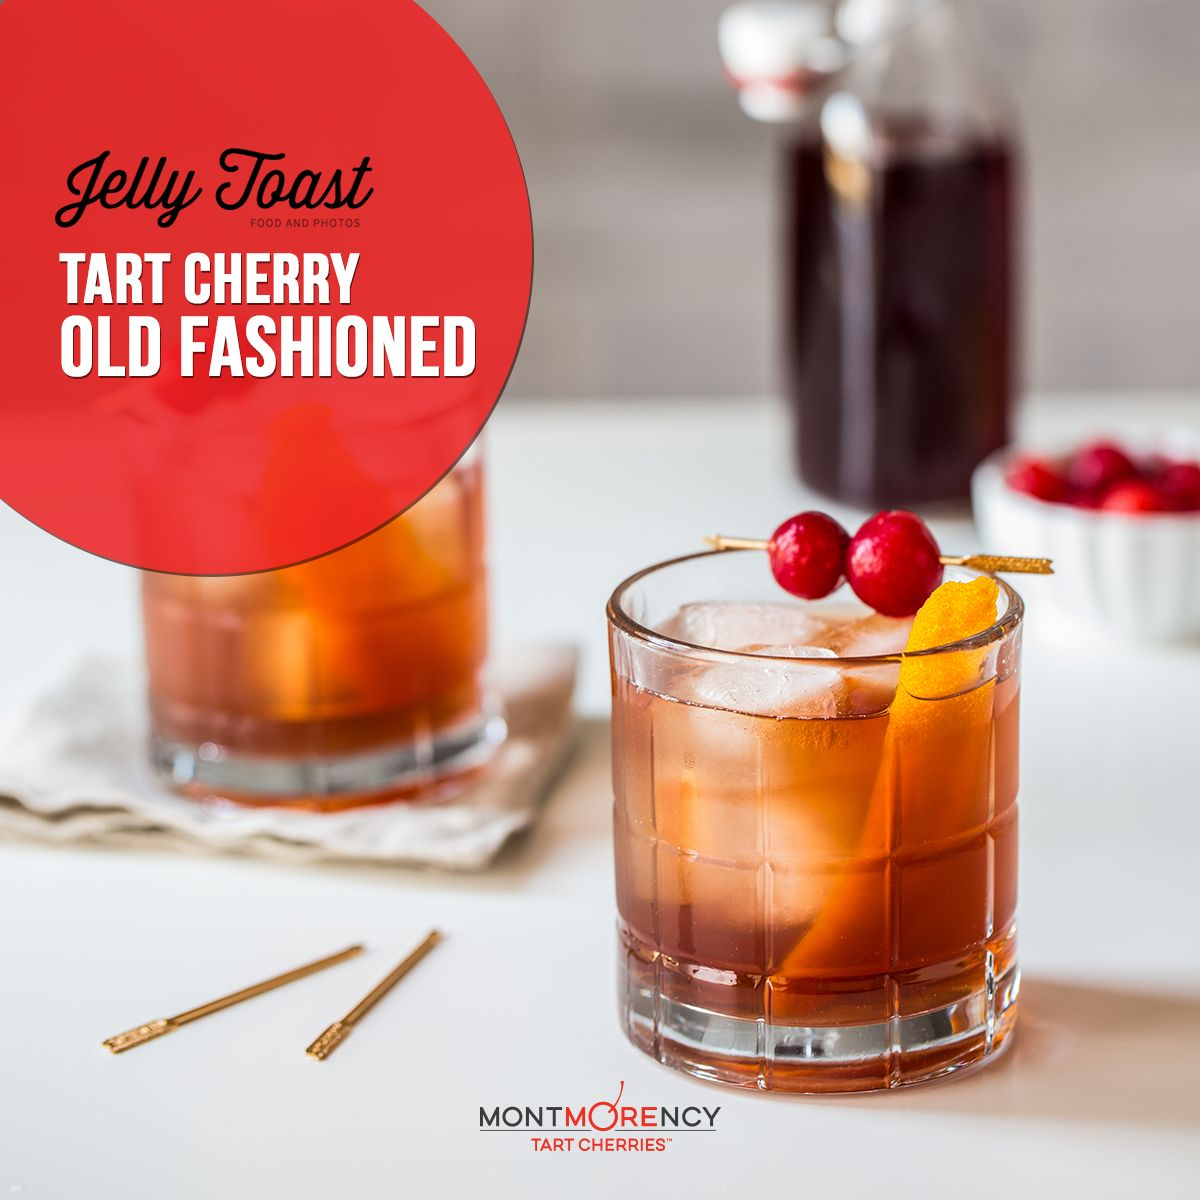 It's cocktail hour! Add a twist to a classic Old Fashioned with this recipe from @jellytoastboard featuring Montmorency tart cherries. #NationalCherryMonth